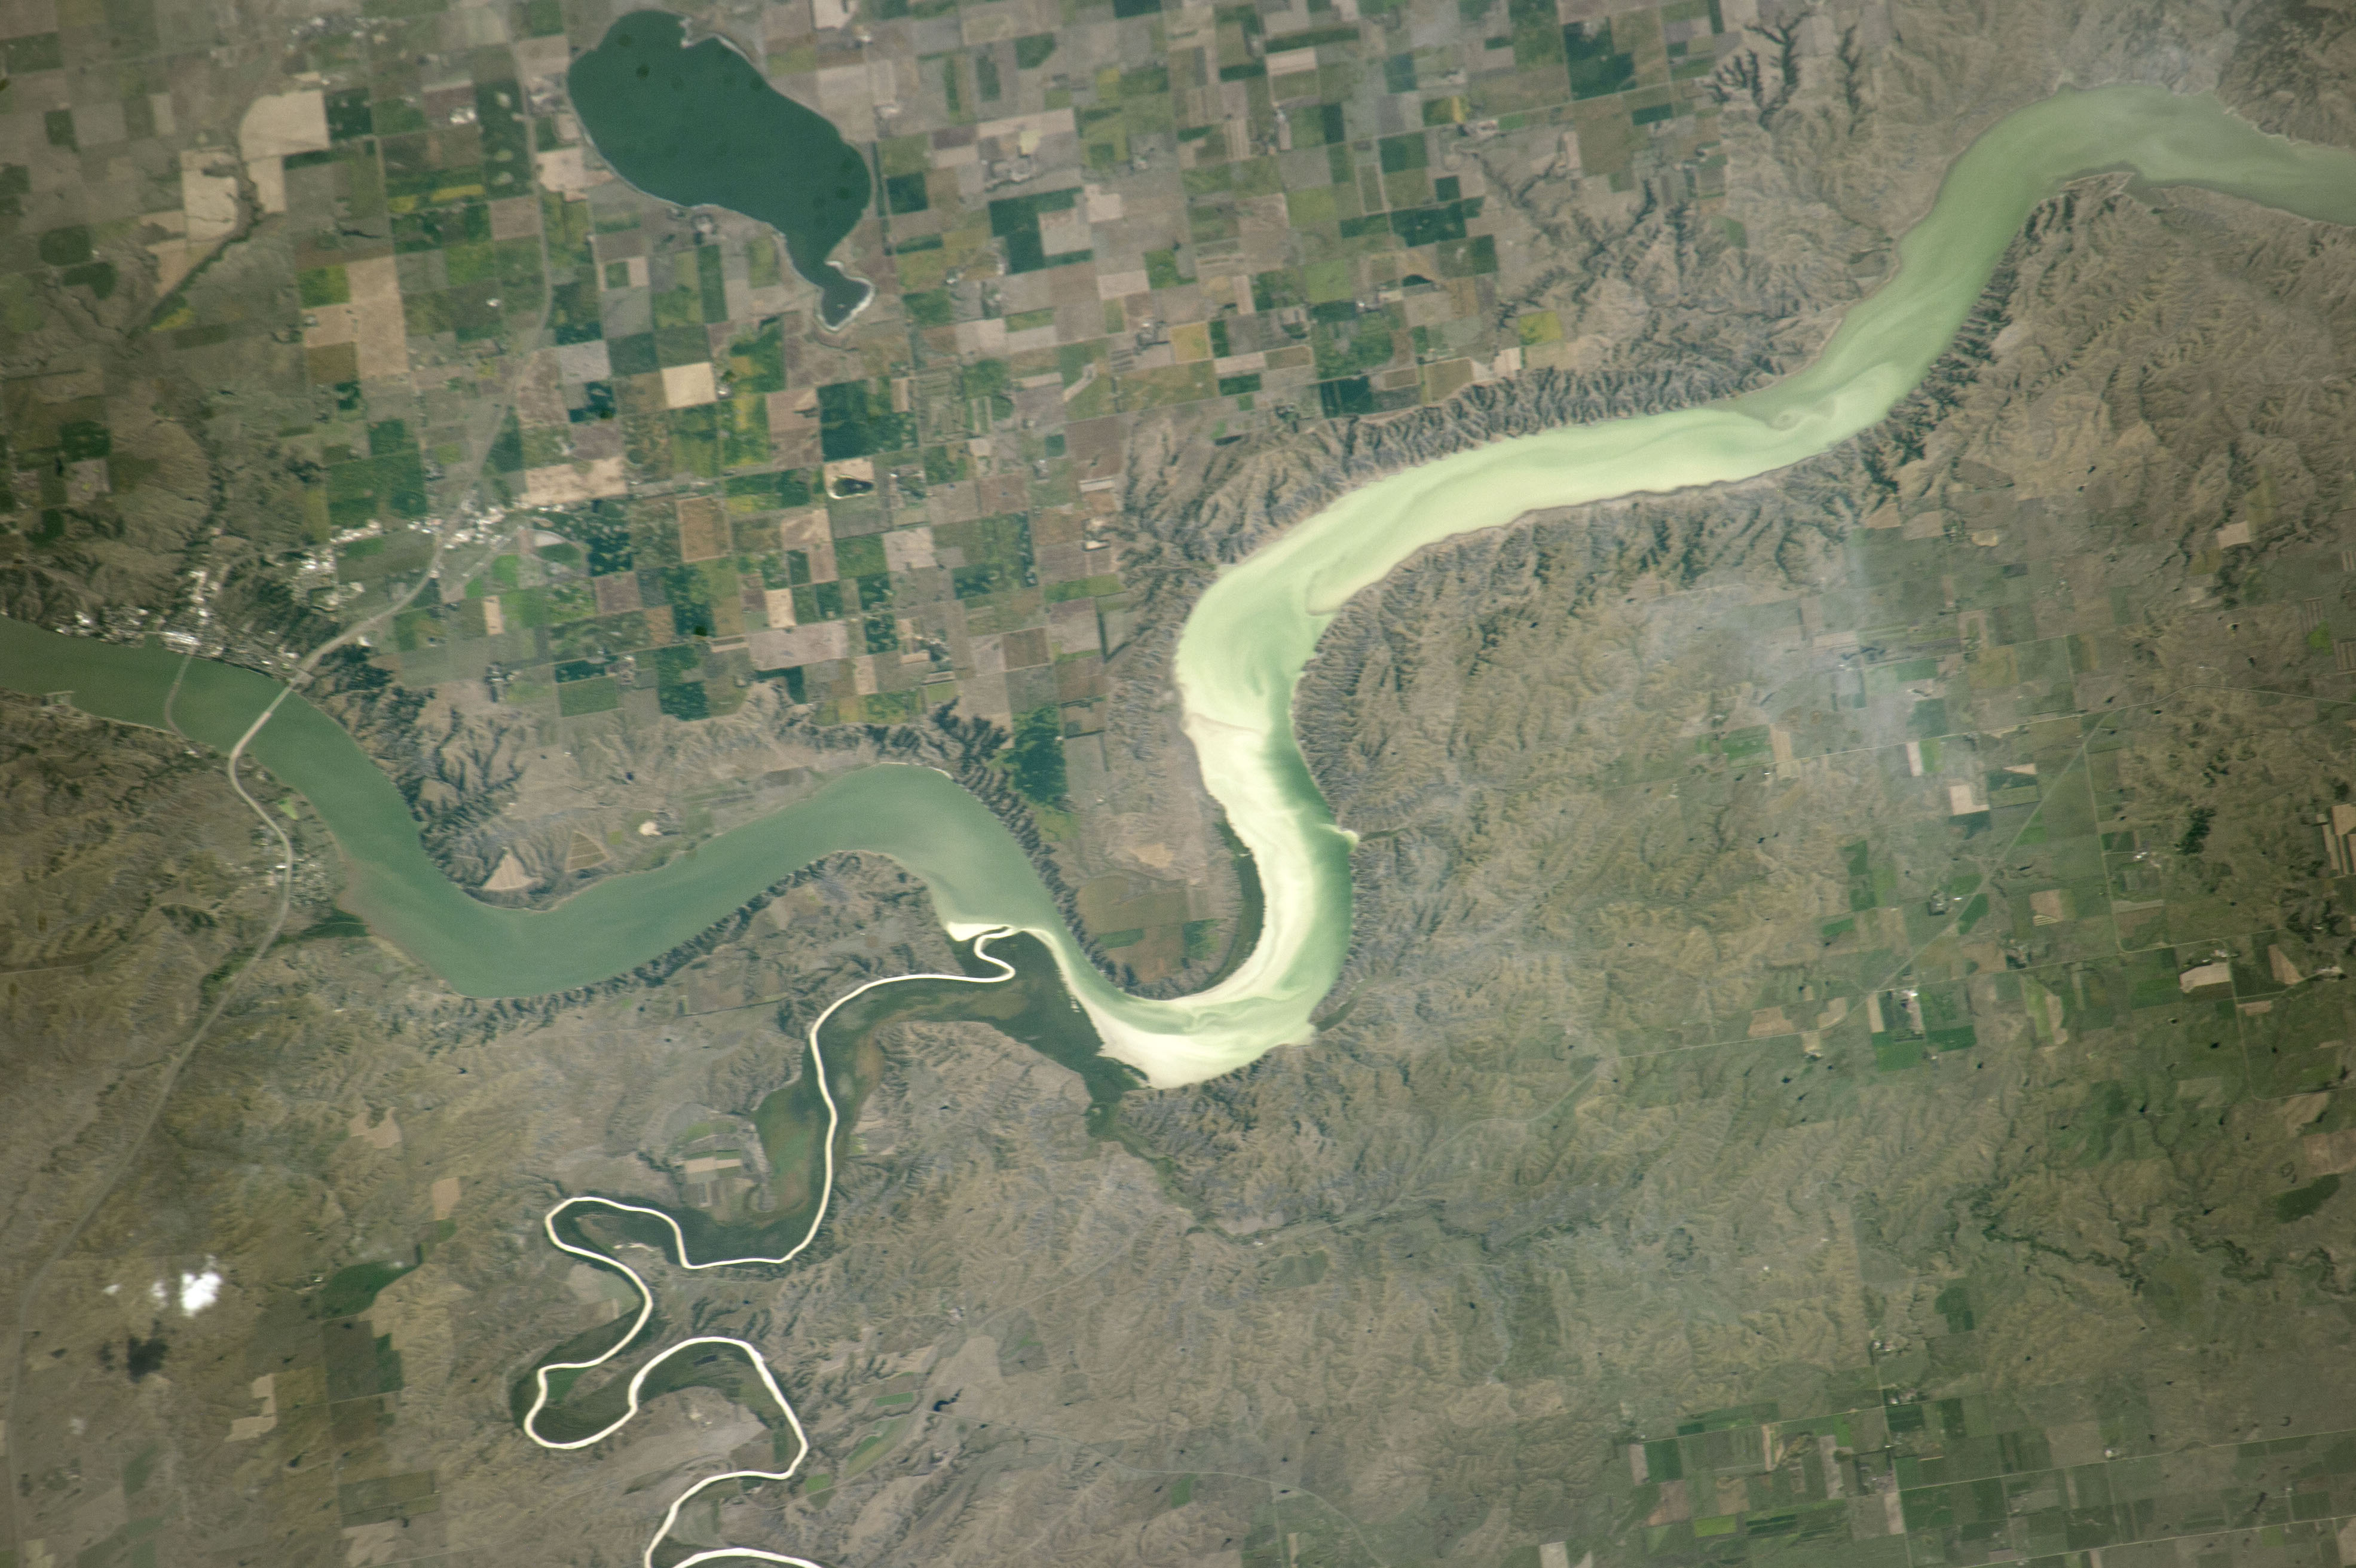 Today's Image of the Day comes from the NASA Earth Observatory and features a look the White River in South Dakota from the International Space Station.